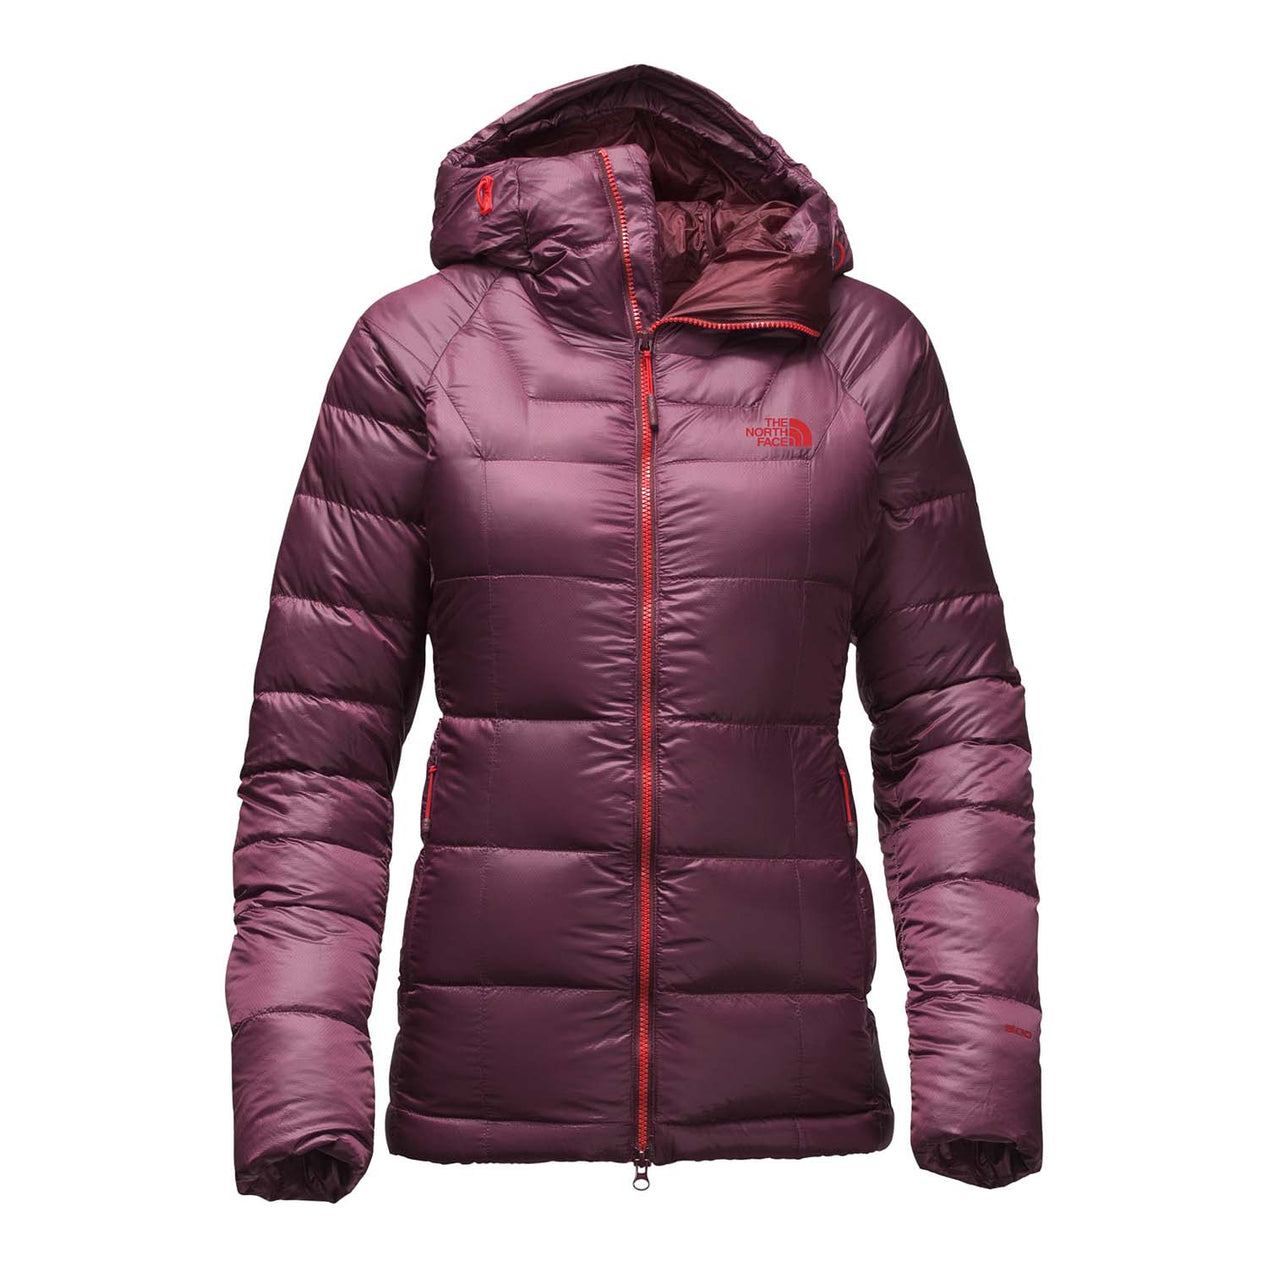 20a2156c16a The North Face Women's Immaculator Parka